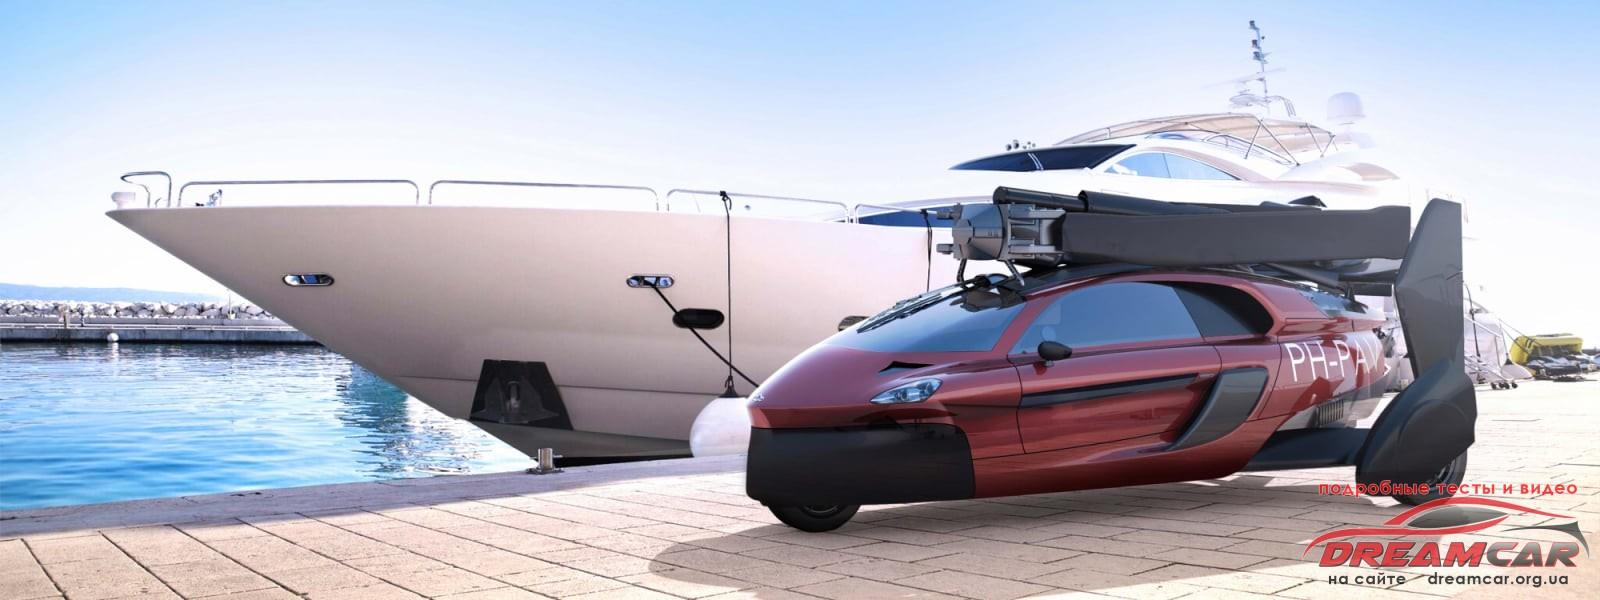 PAL-V-Flying-Car-Yacht